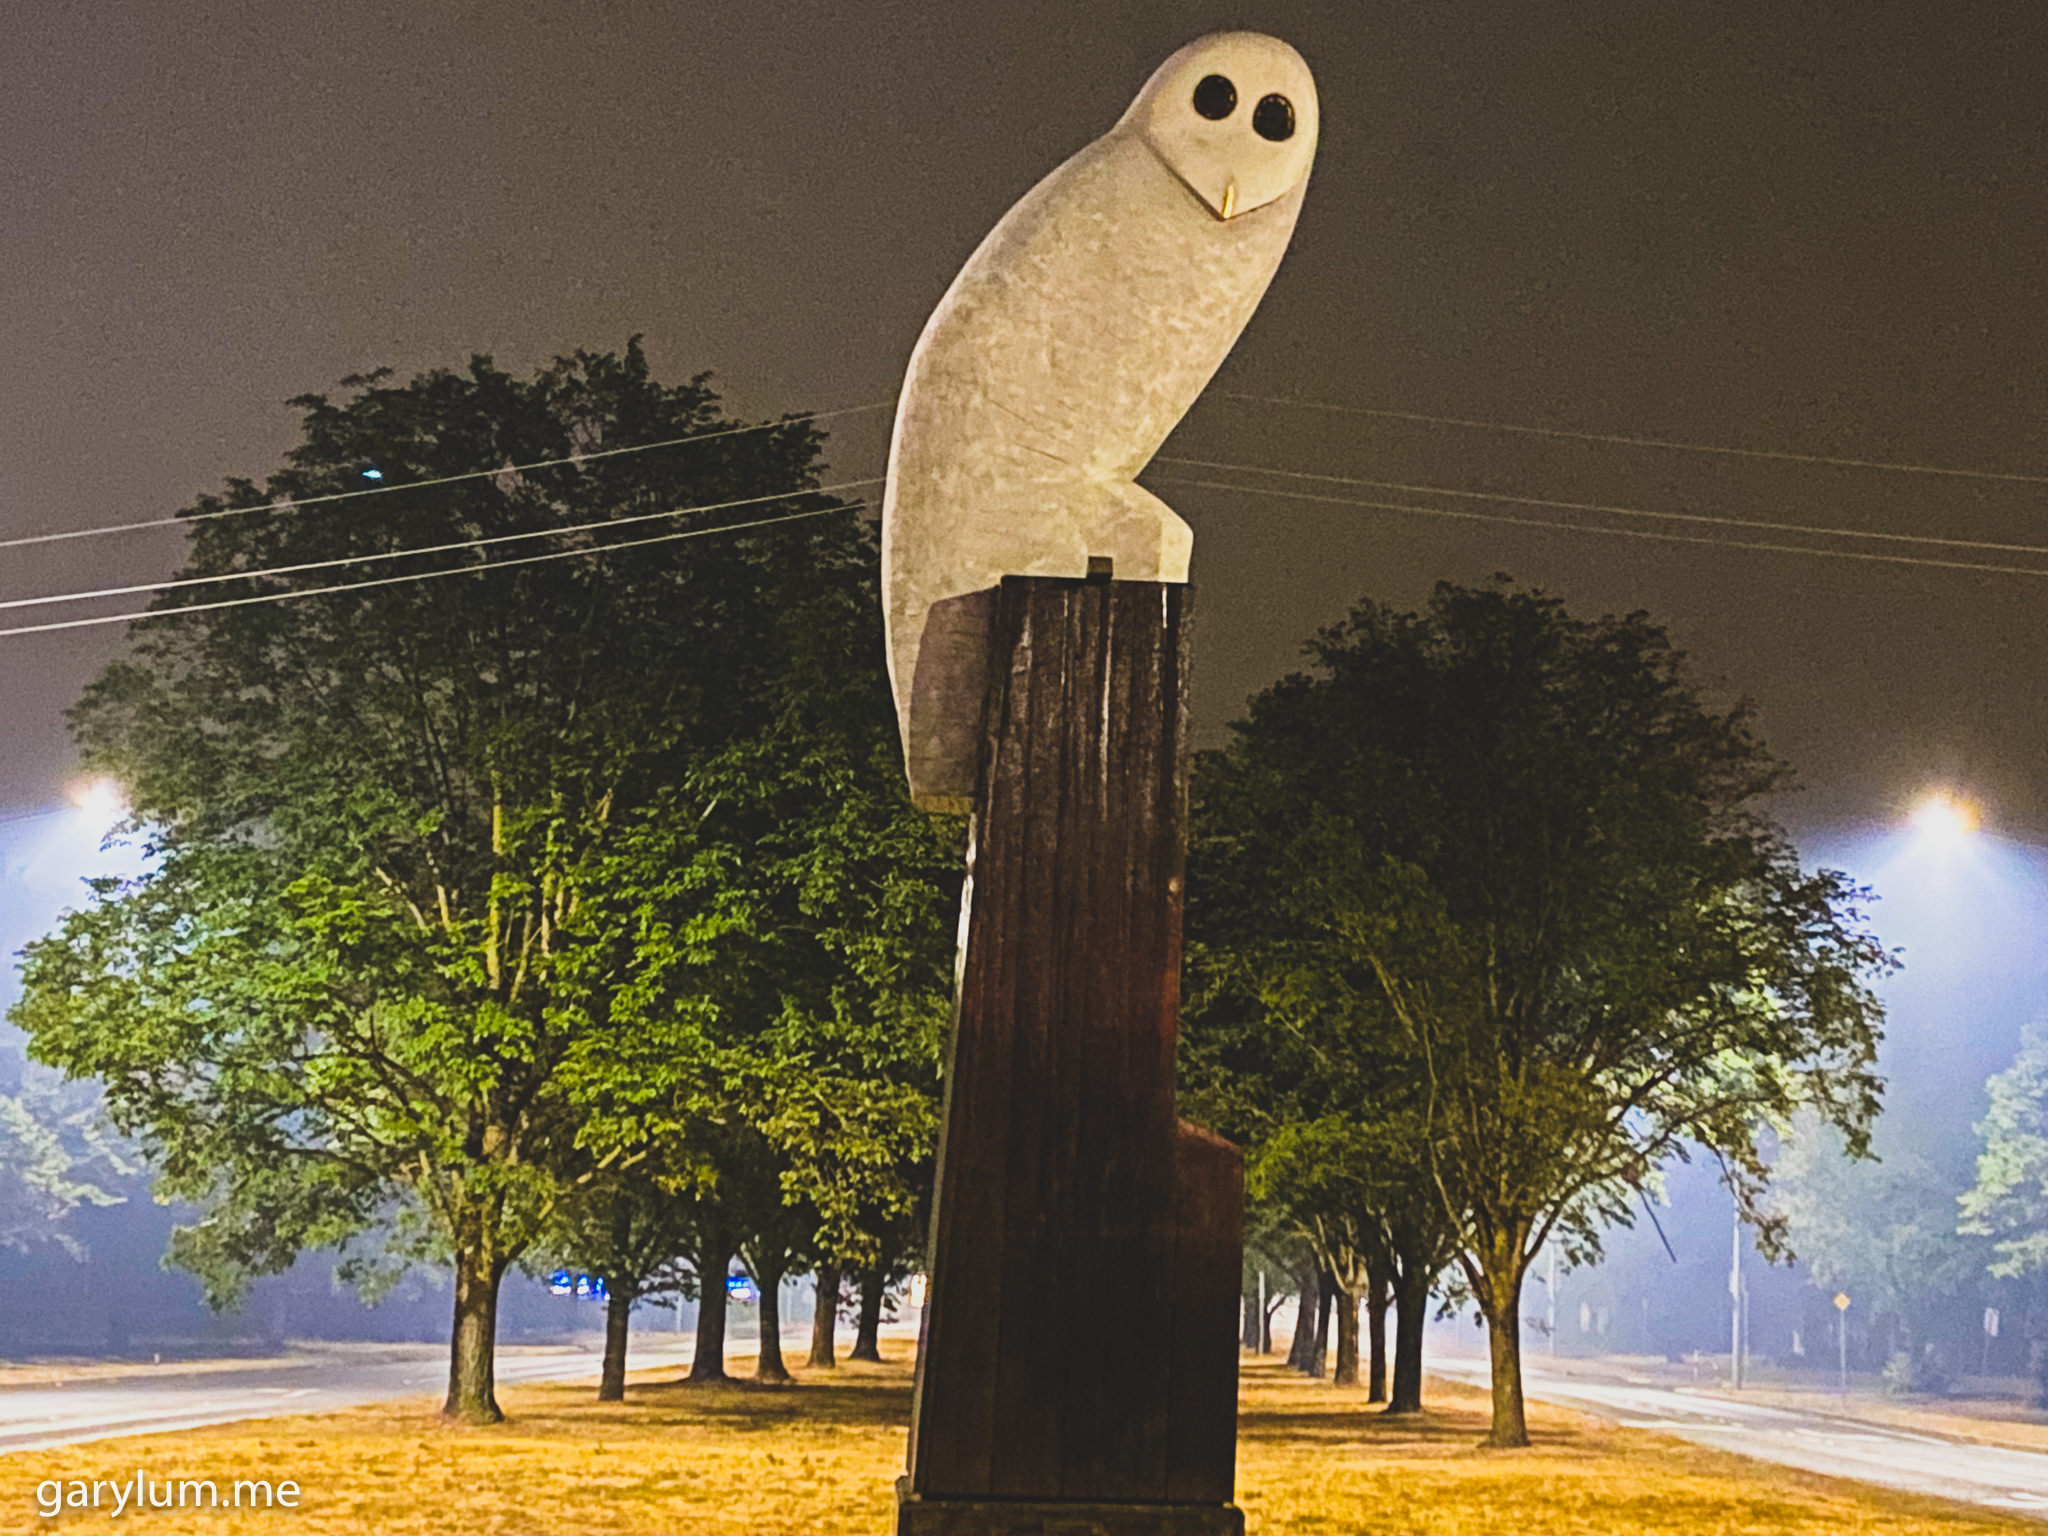 PHotograph of The Owl Statue on an hazy Saturday morning in smoke inundated Canberra. Gary Lum.